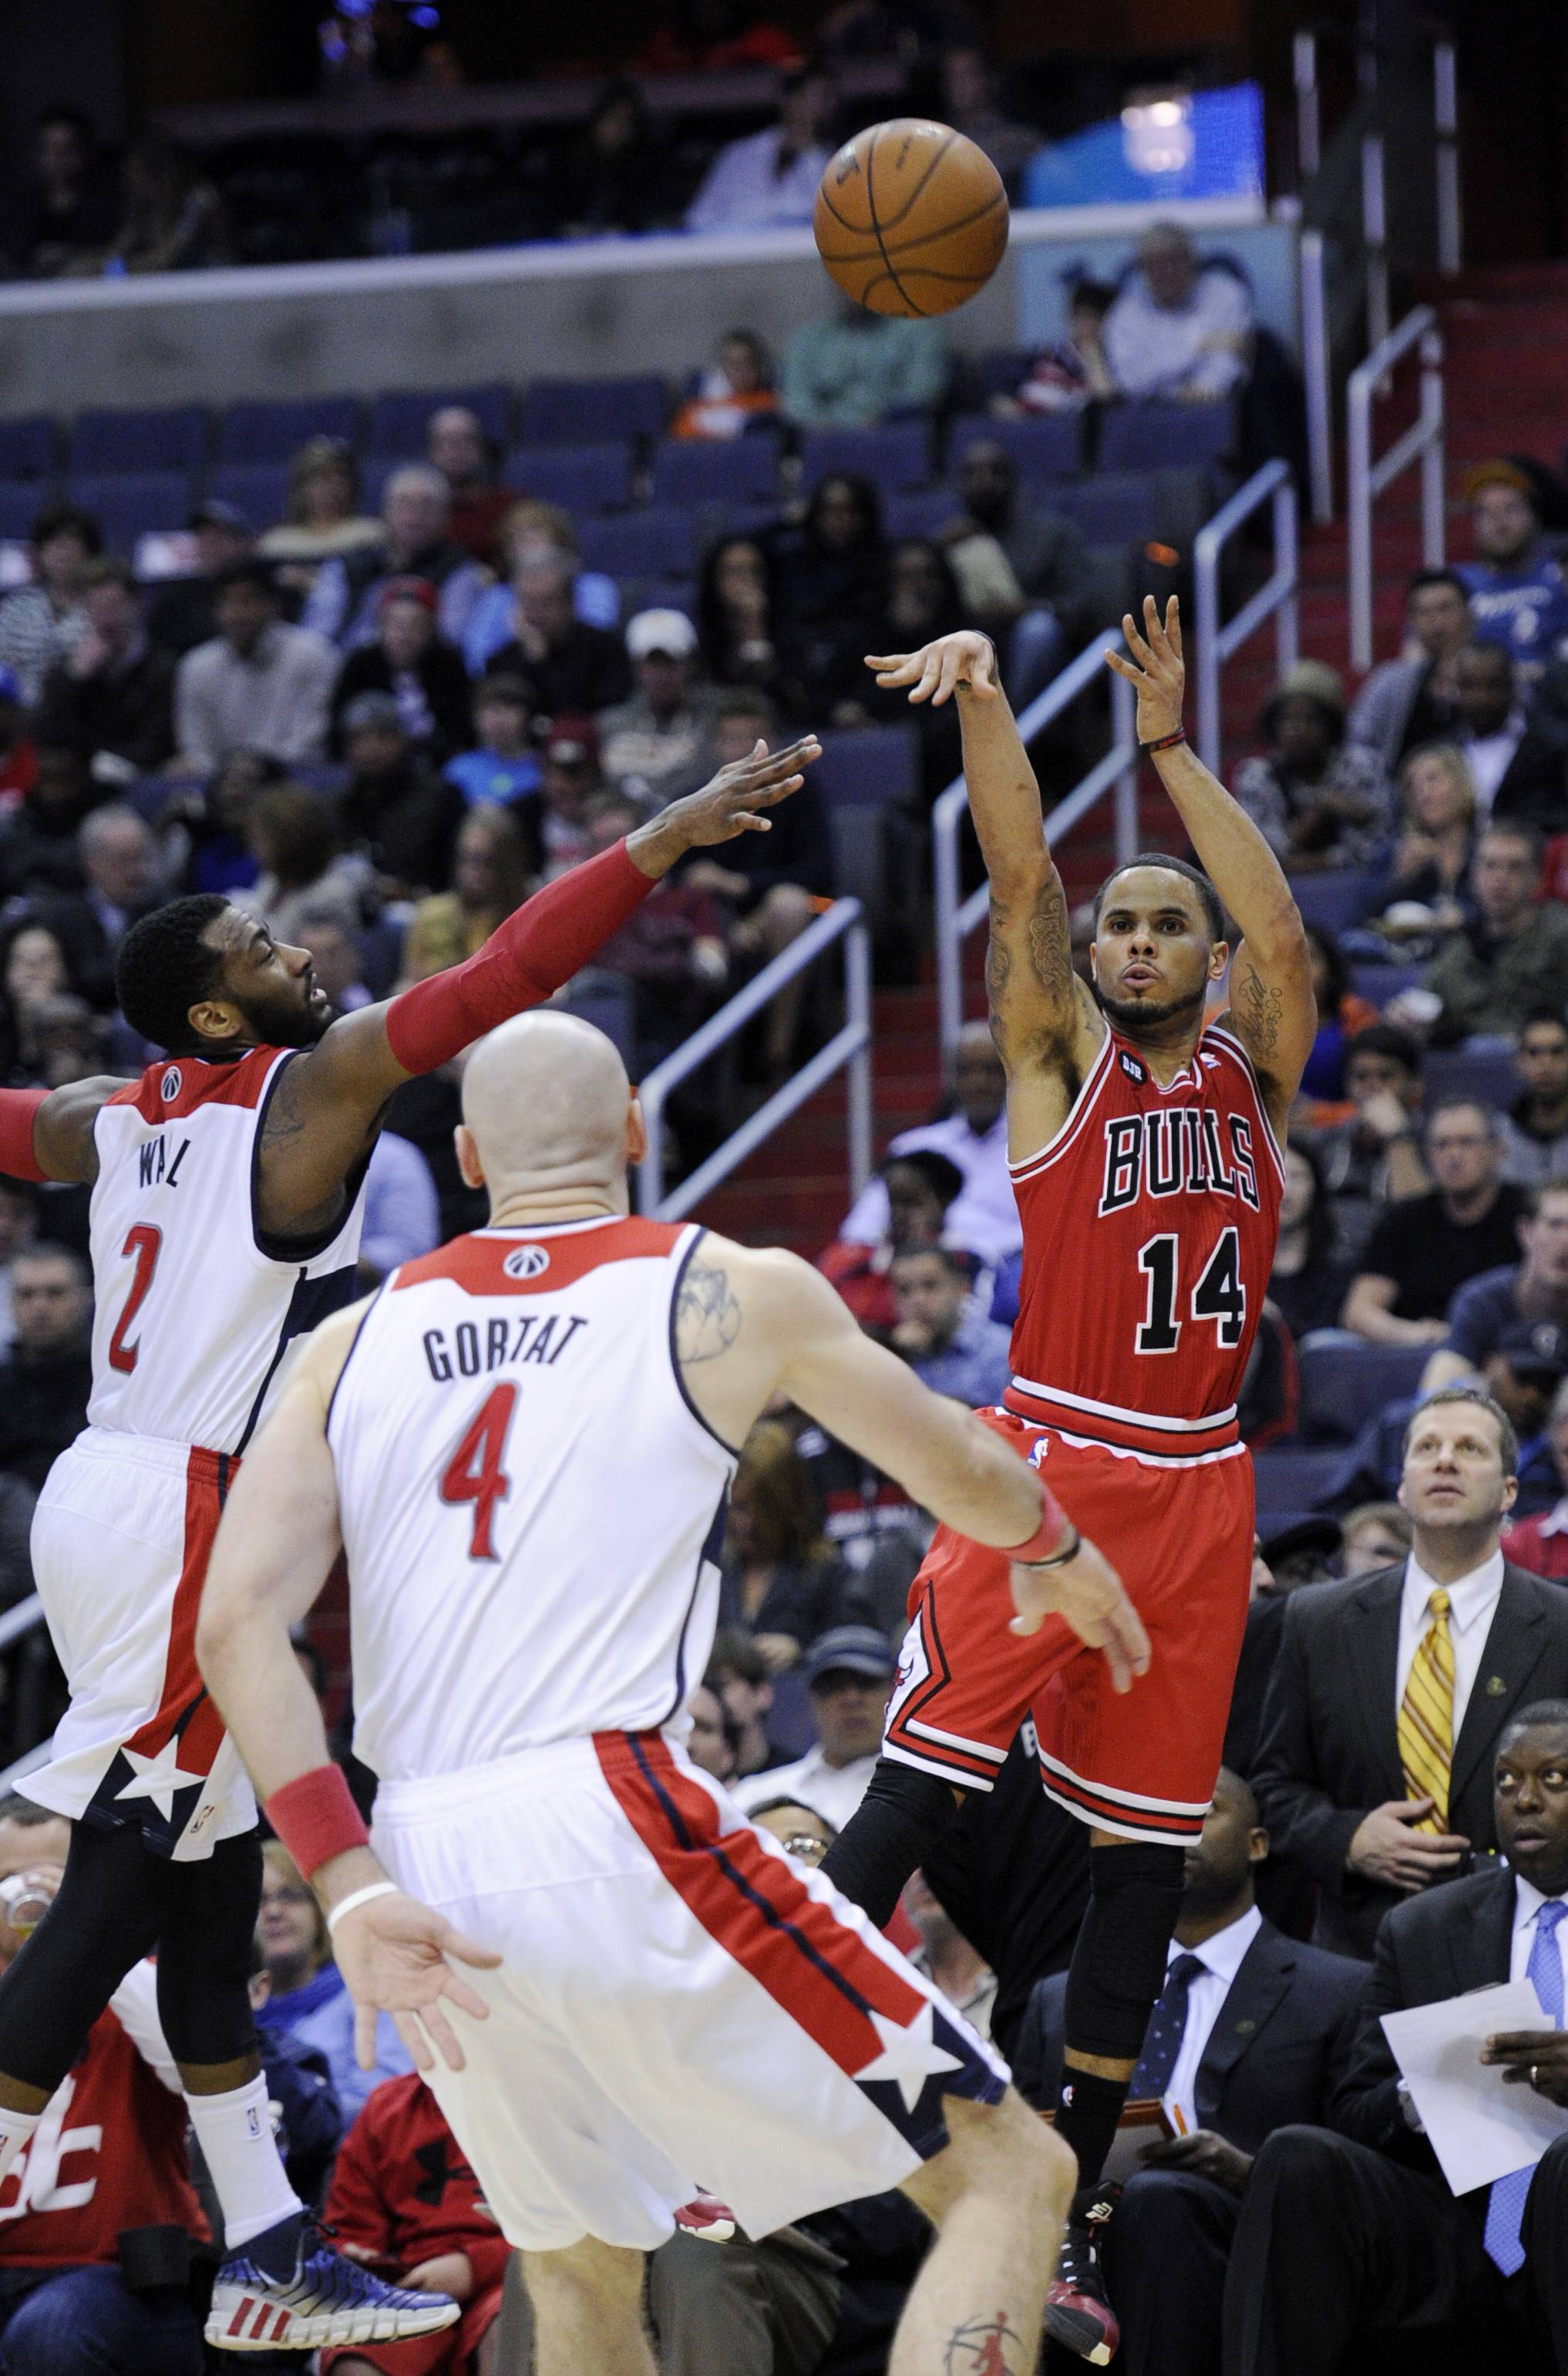 Chicago Bulls guard D.J. Augustin (14) takes a shot against Washington Wizards' John Wall (2) and Marcin Gortat (4), of Poland, during the first half of an NBA basketball game, Saturday, April 5, 2014, in Washington. The Bulls won 96-78.